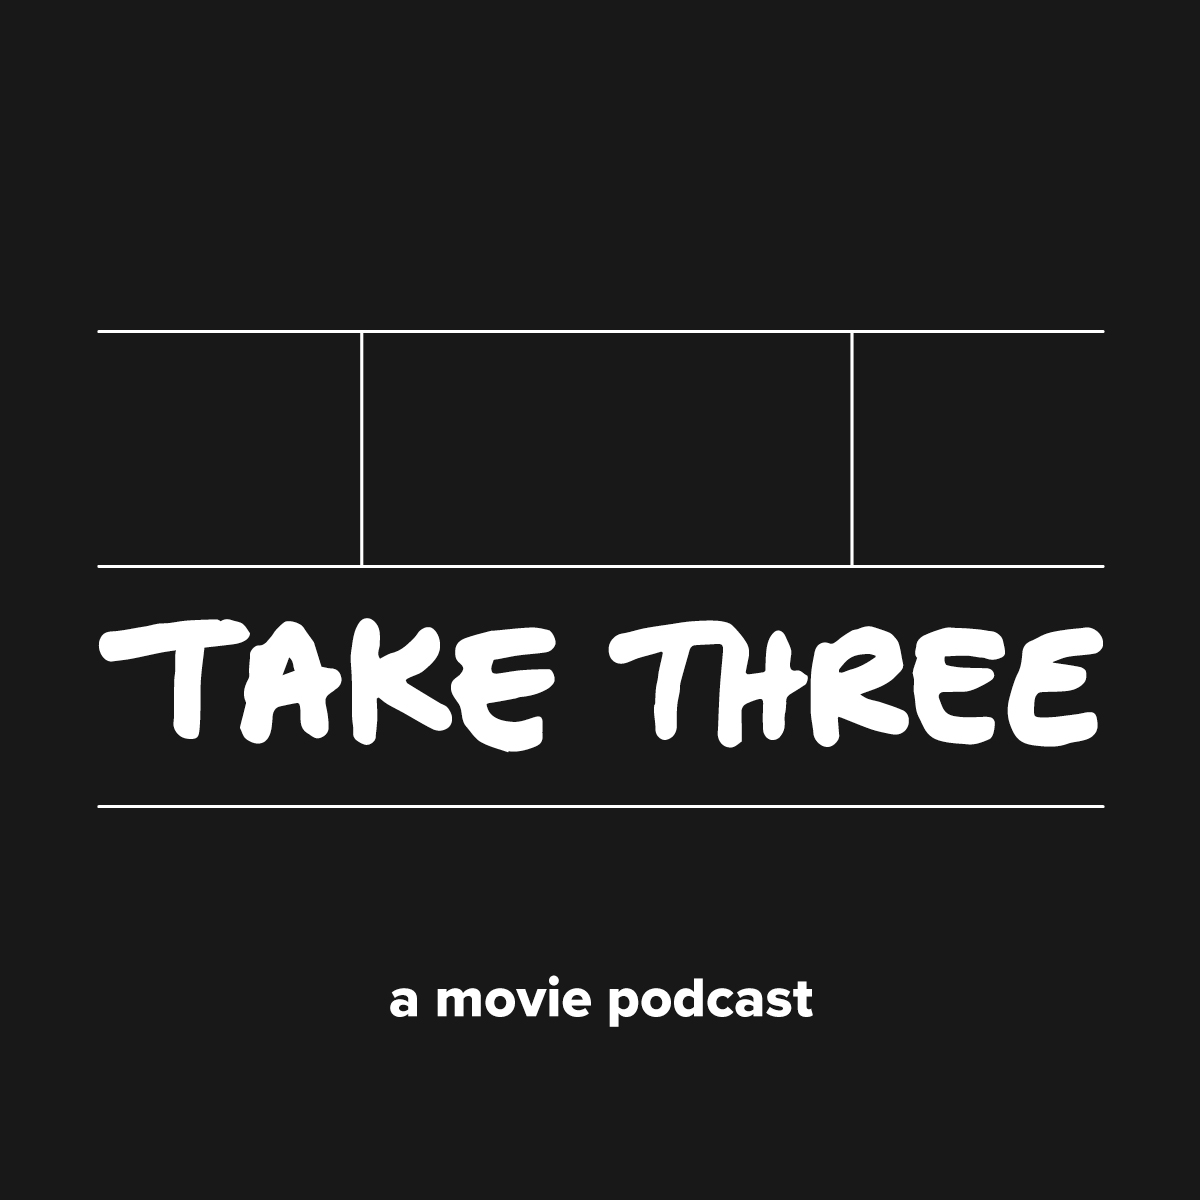 Take Three: A Movie Podcast